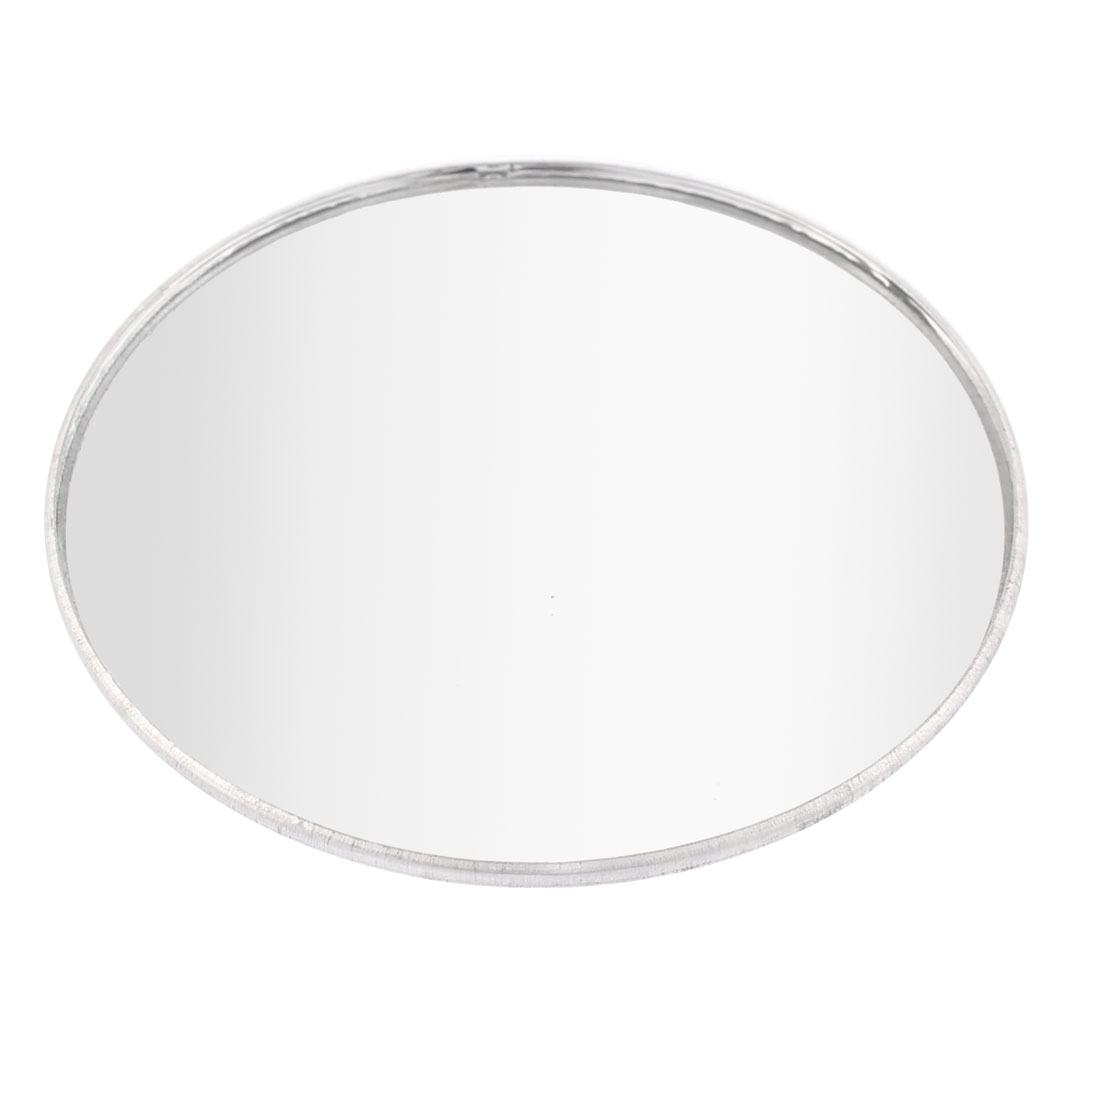 "Car 3"" Adhesive Round Shape Convex Rearview Blind Spot Mirror Silver Tone"